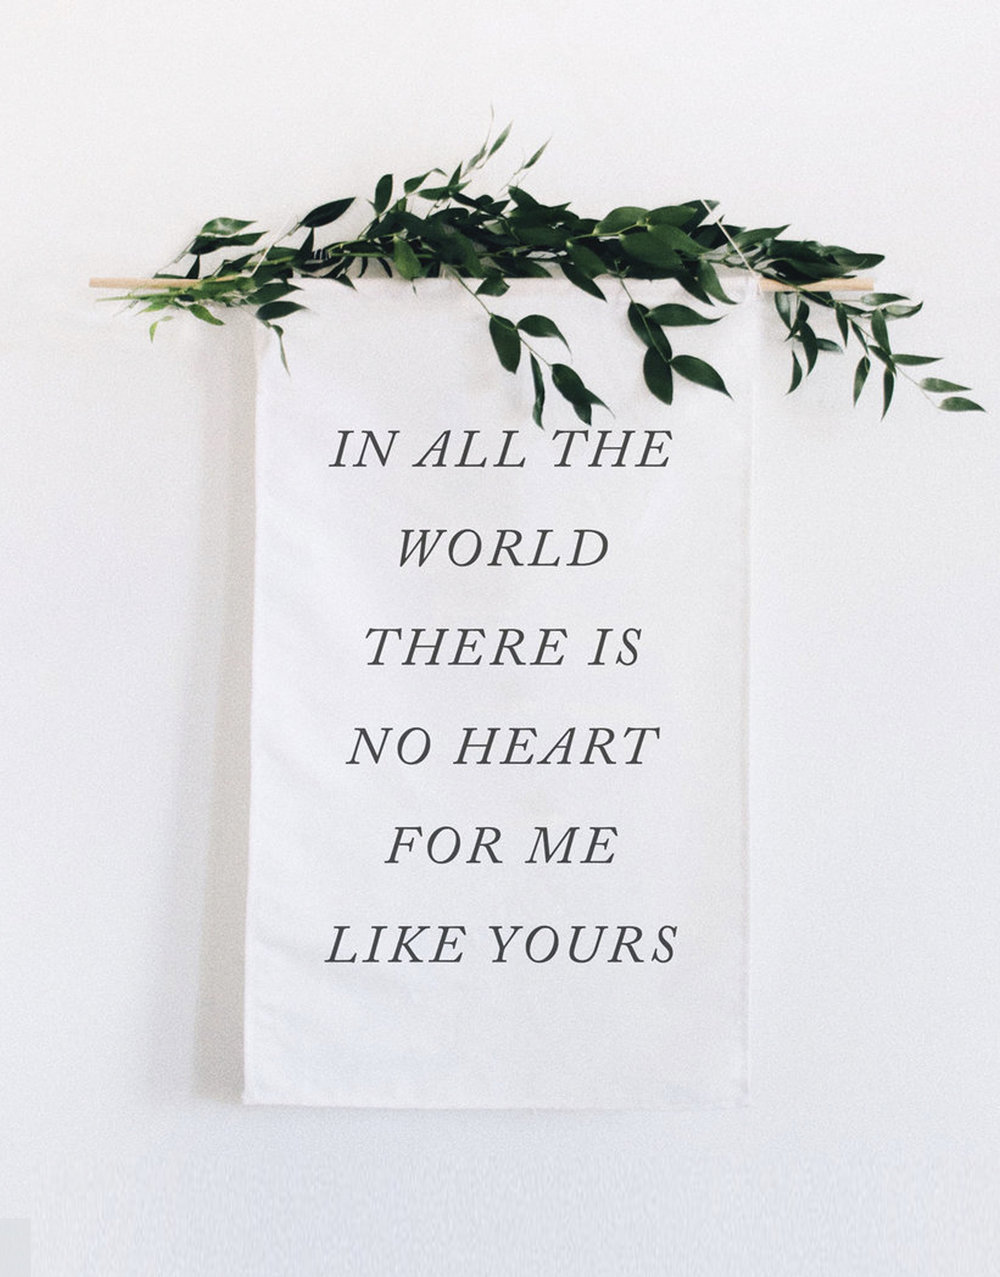 In All the World There Is No Heart For Me Like Yours Wedding Banner by Quinn Luu